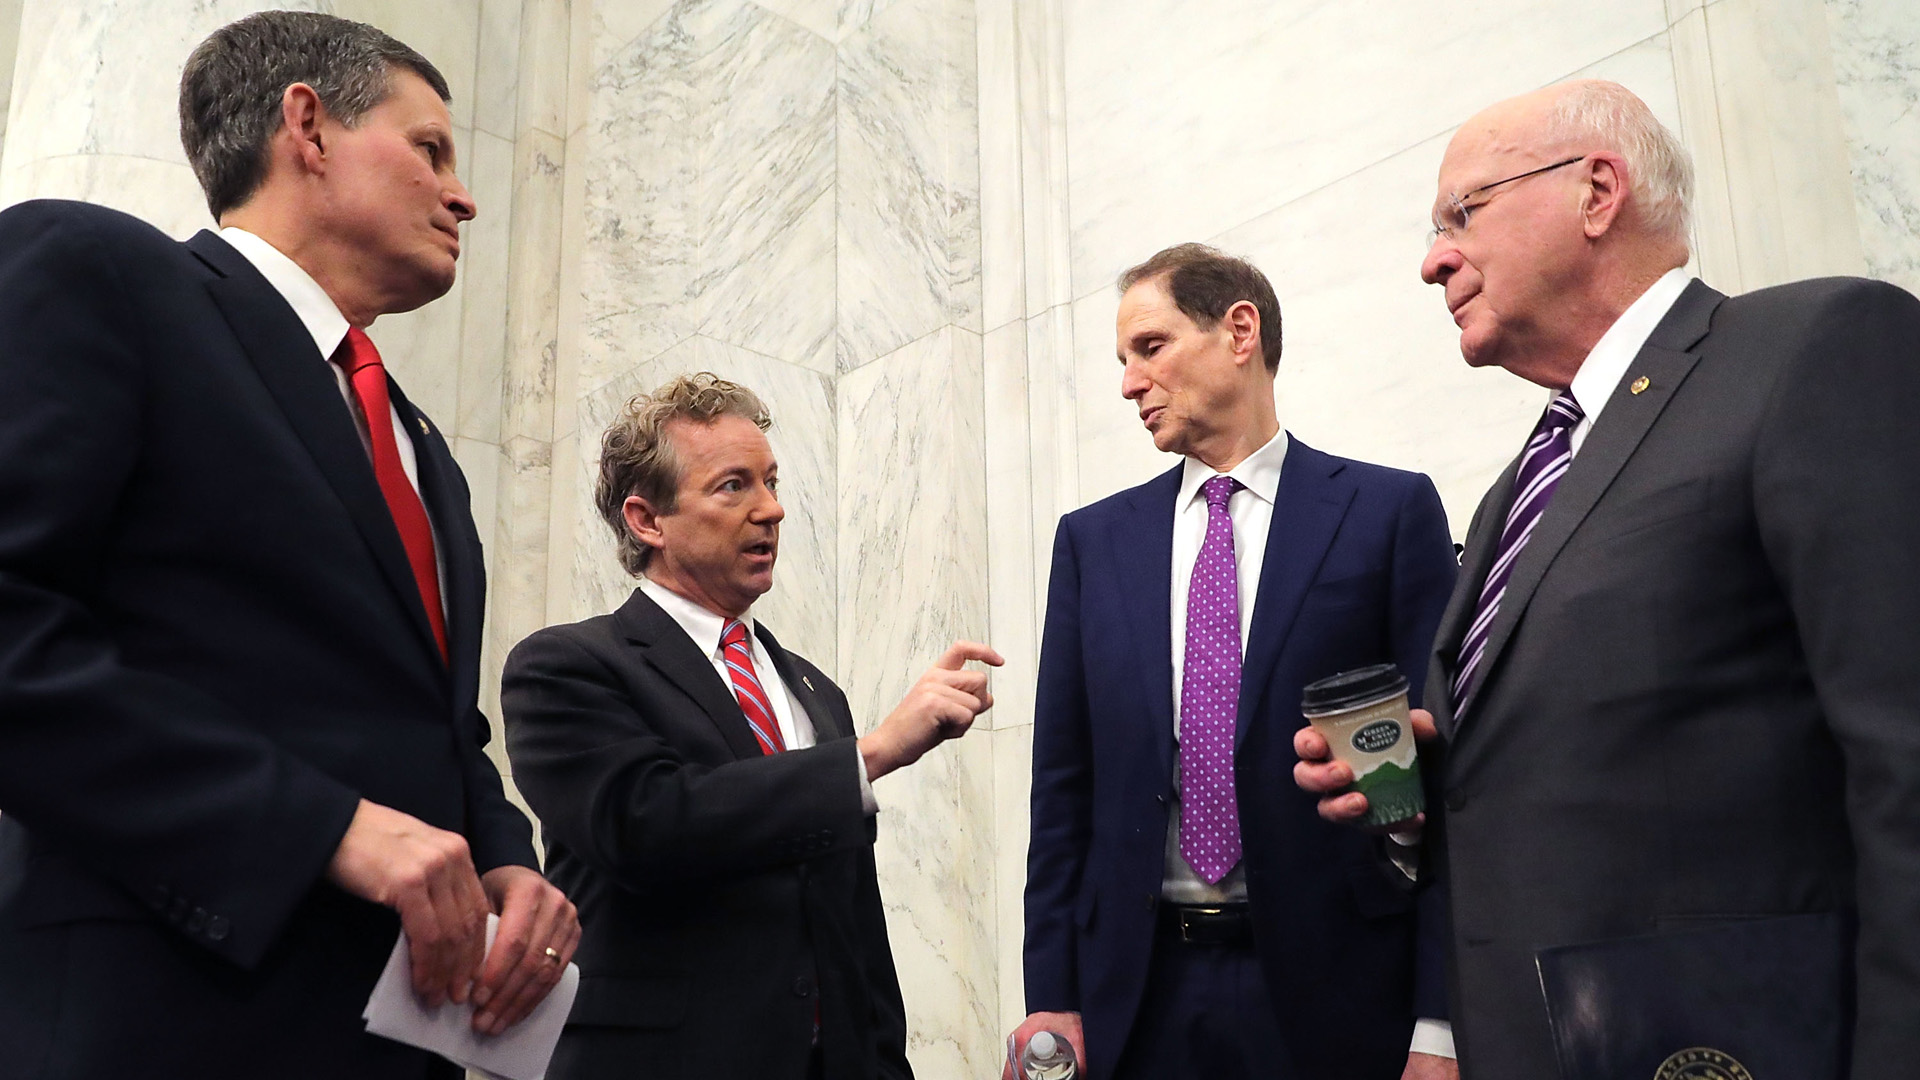 (L-R) Sen. Steve Daines (R-MT), Sen. Rand Paul (R-KY), Sen. Ron Wyden (D-OR) and Sen. Patrick Leahy (D-VT) talk strategy before a news conference about their proposed reforms to the Foreign Intelligence Surveillance Act in the Russell Senate Office Building on Capitol Hill January 16, 2018 in Washington, DC. (Credit: Chip Somodevilla/Getty Images)